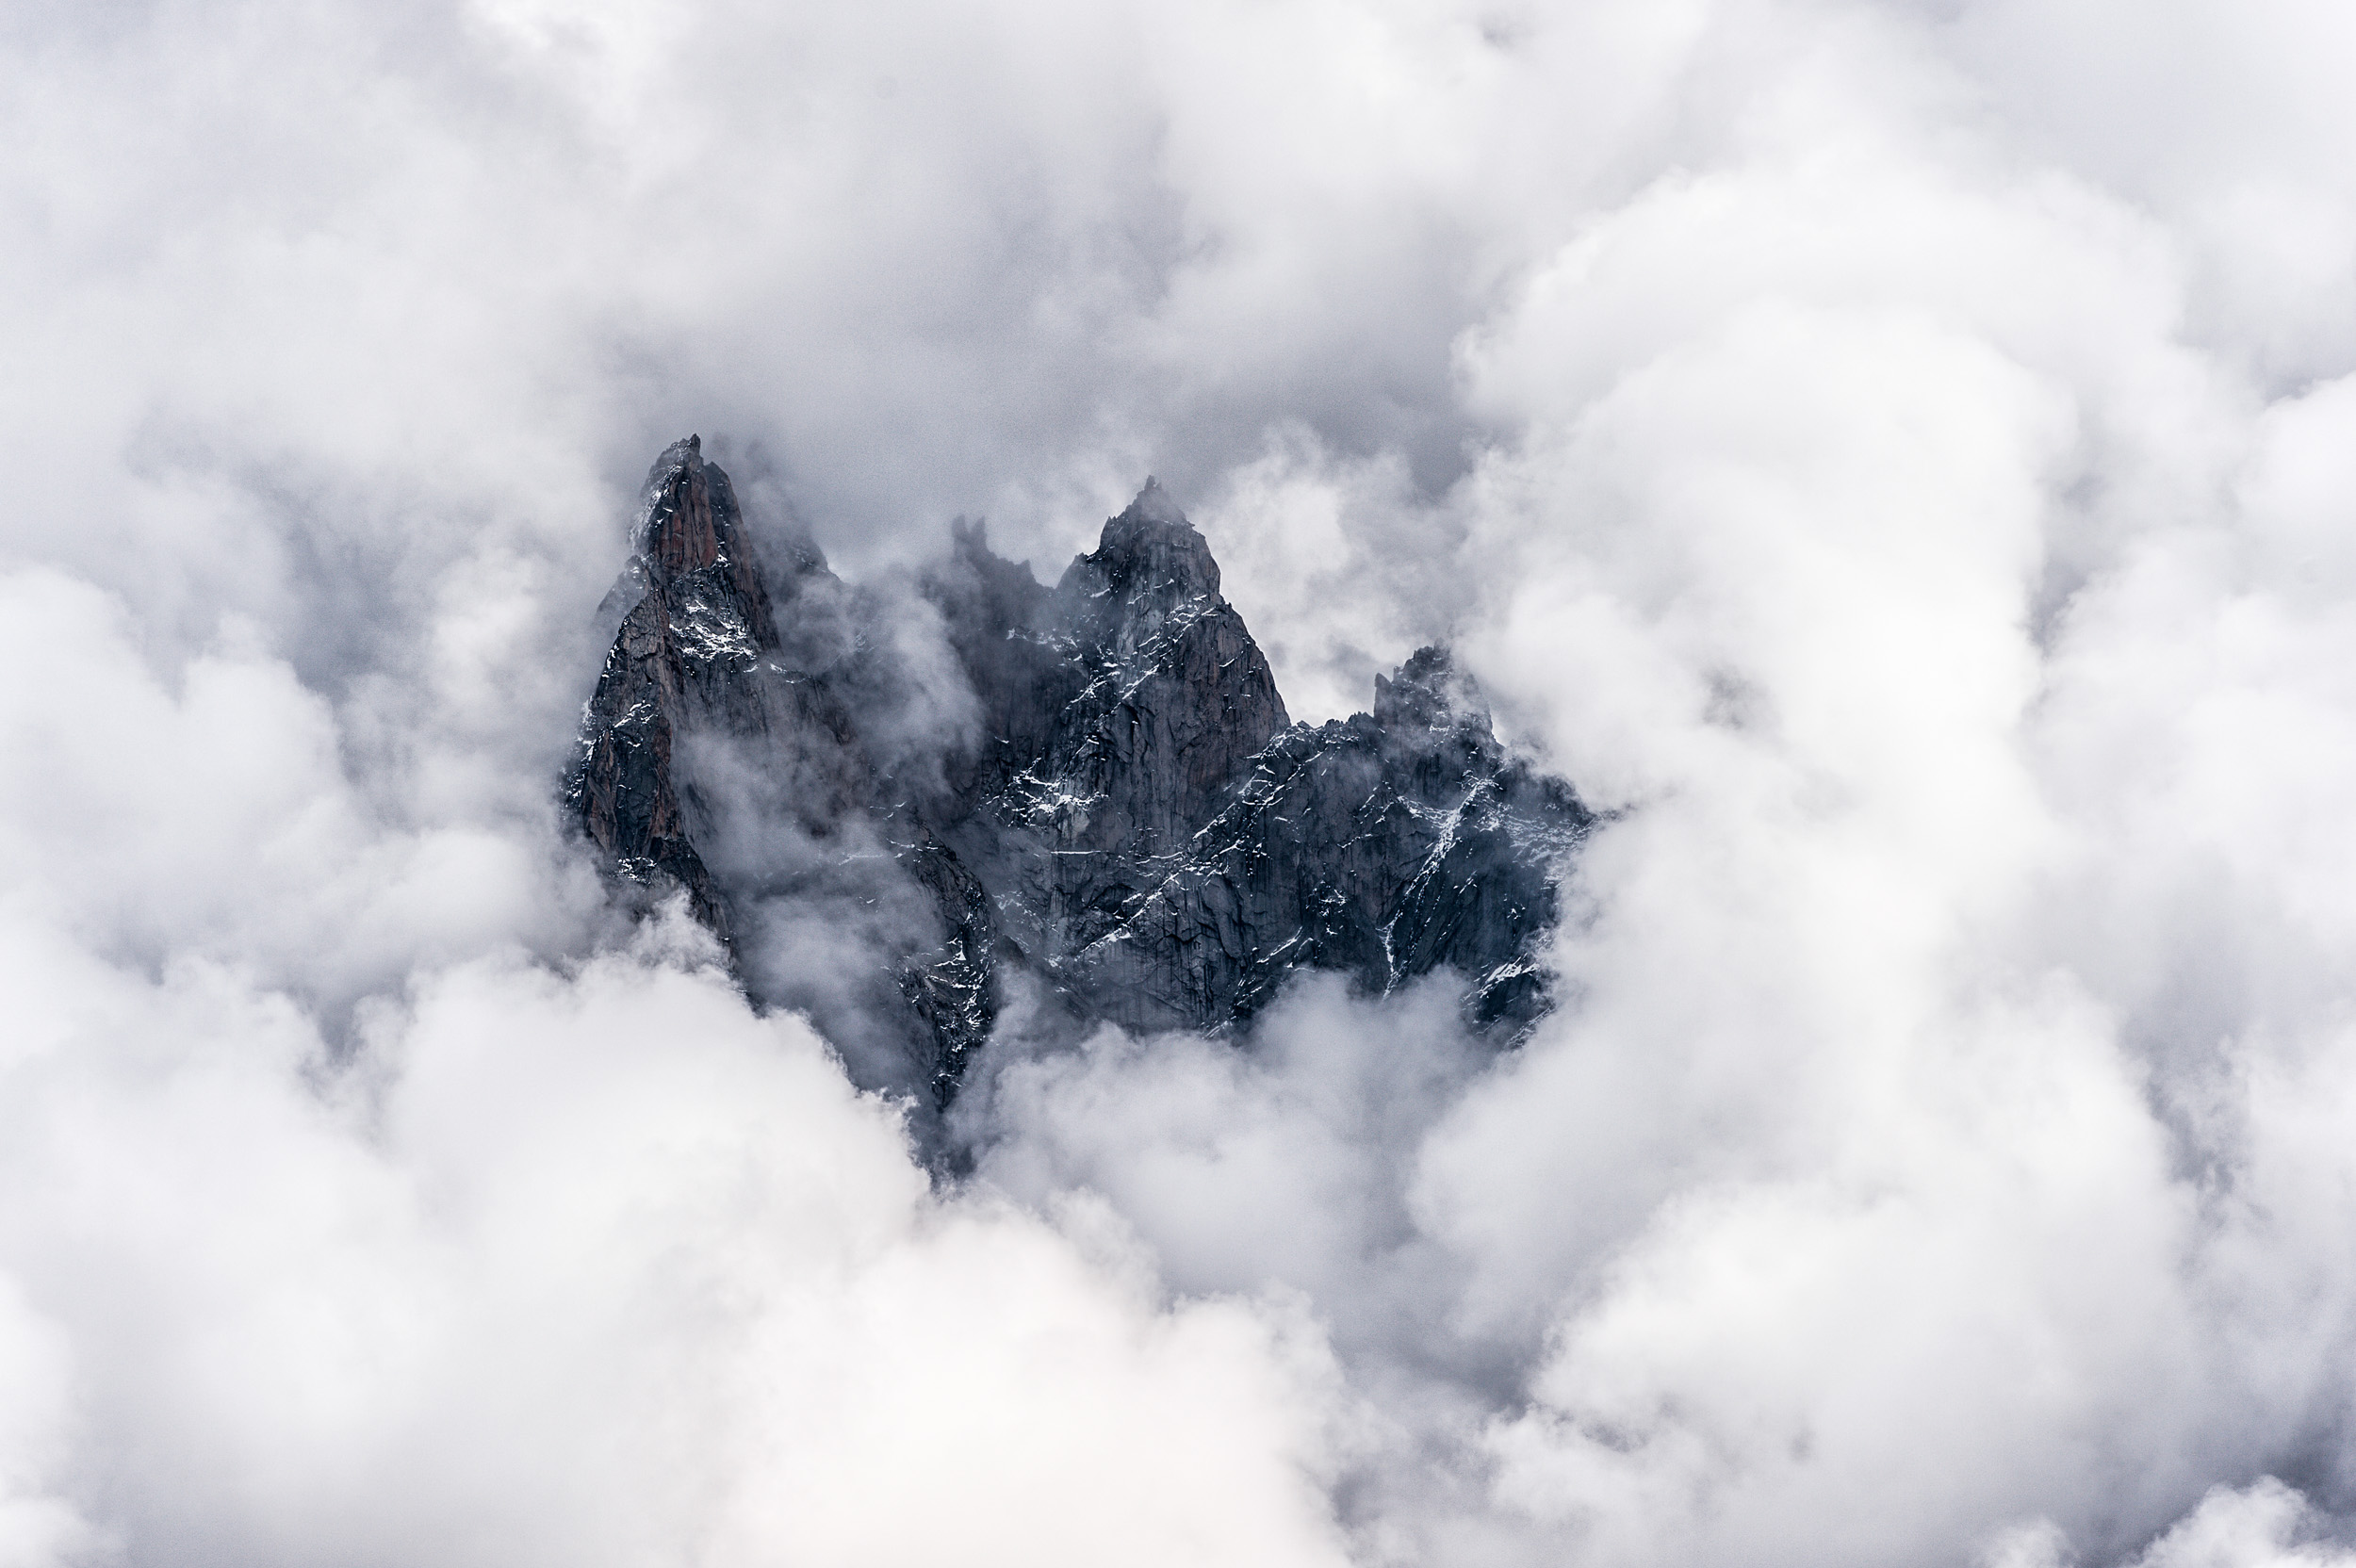 Afternoon clouds surrounding the summits of Aiguille de Blaitière, Aiguille des Ciseaux, Aiguille du Fou in the Mont Blanc region of France.